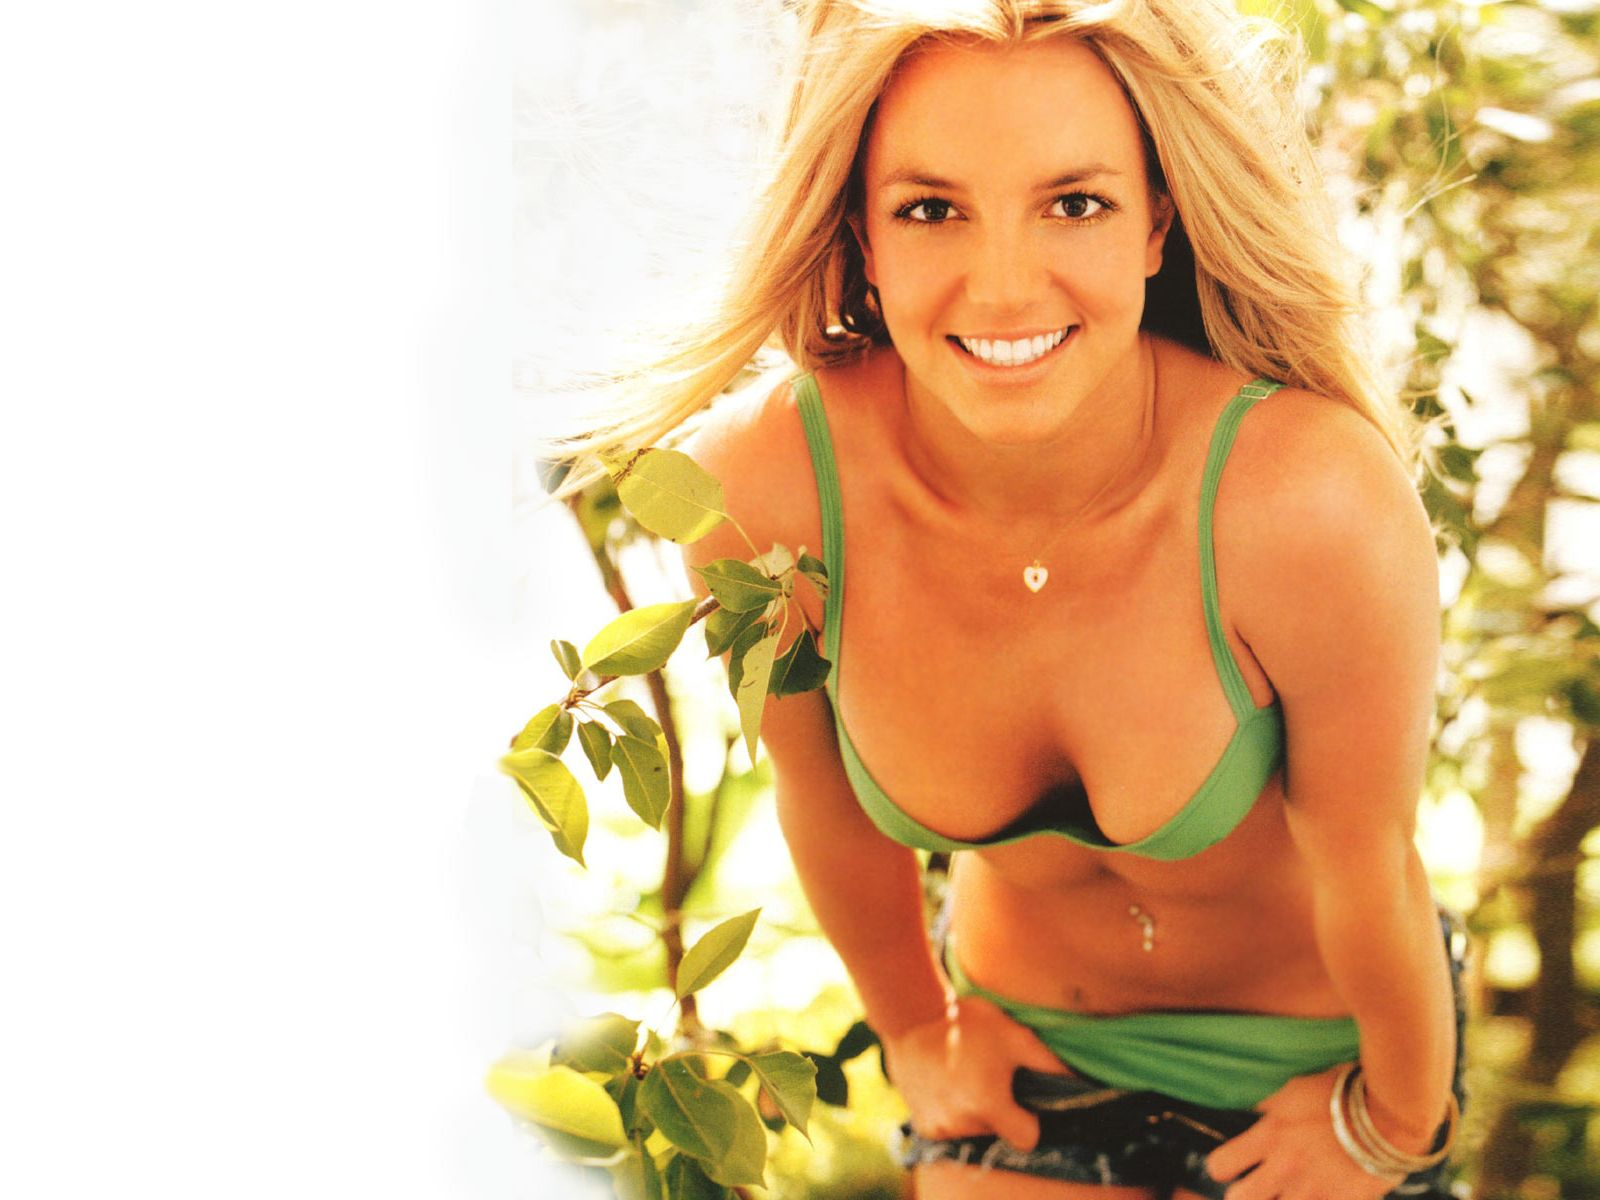 Britney Spears Gorgeous And Hot Singer Fresh Wallpapers